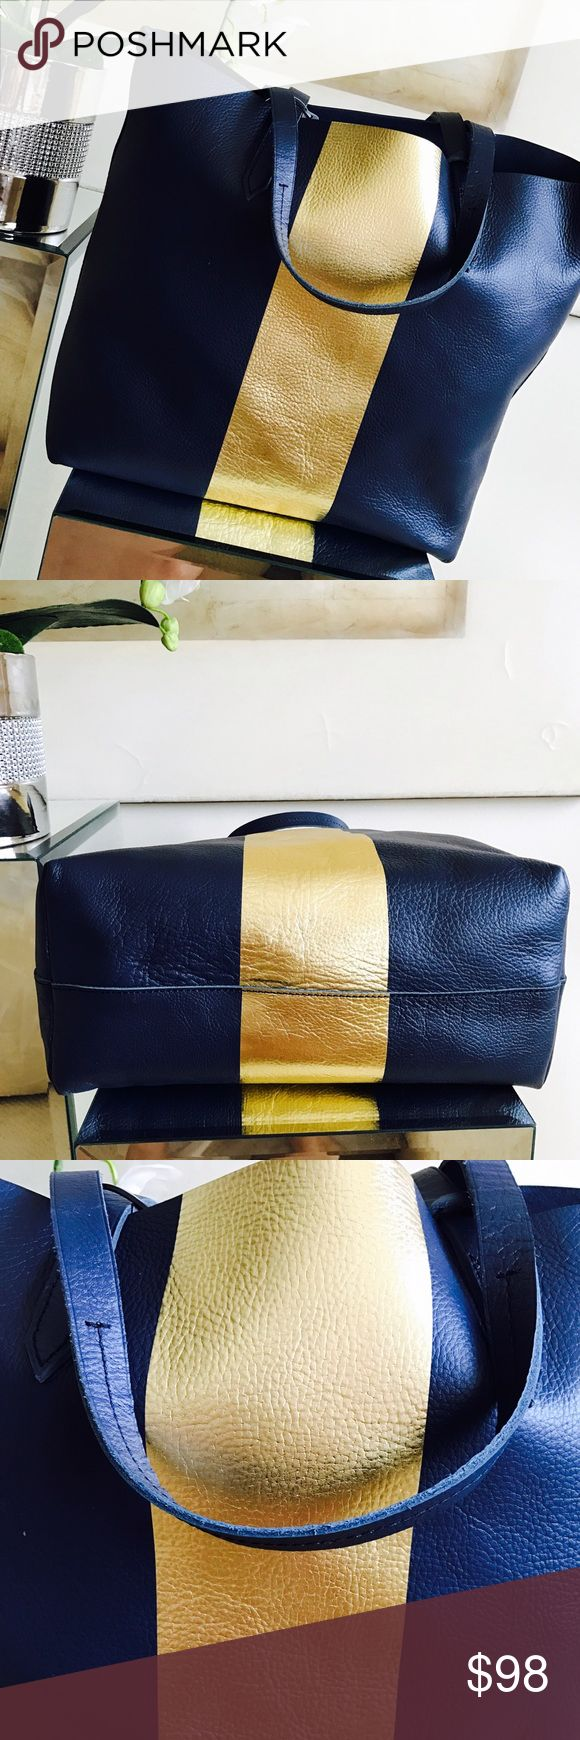 J. Crew Delaney Tote Bag - Brand New - Navy & Gold Beautiful J Crew Delaney tote new with tags. Perfect as functional daily career bag or dressy weekends. Please see pictures and measurements attached. Perfect item for bundles. Thanks! 💋💋 J. Crew Bags Totes